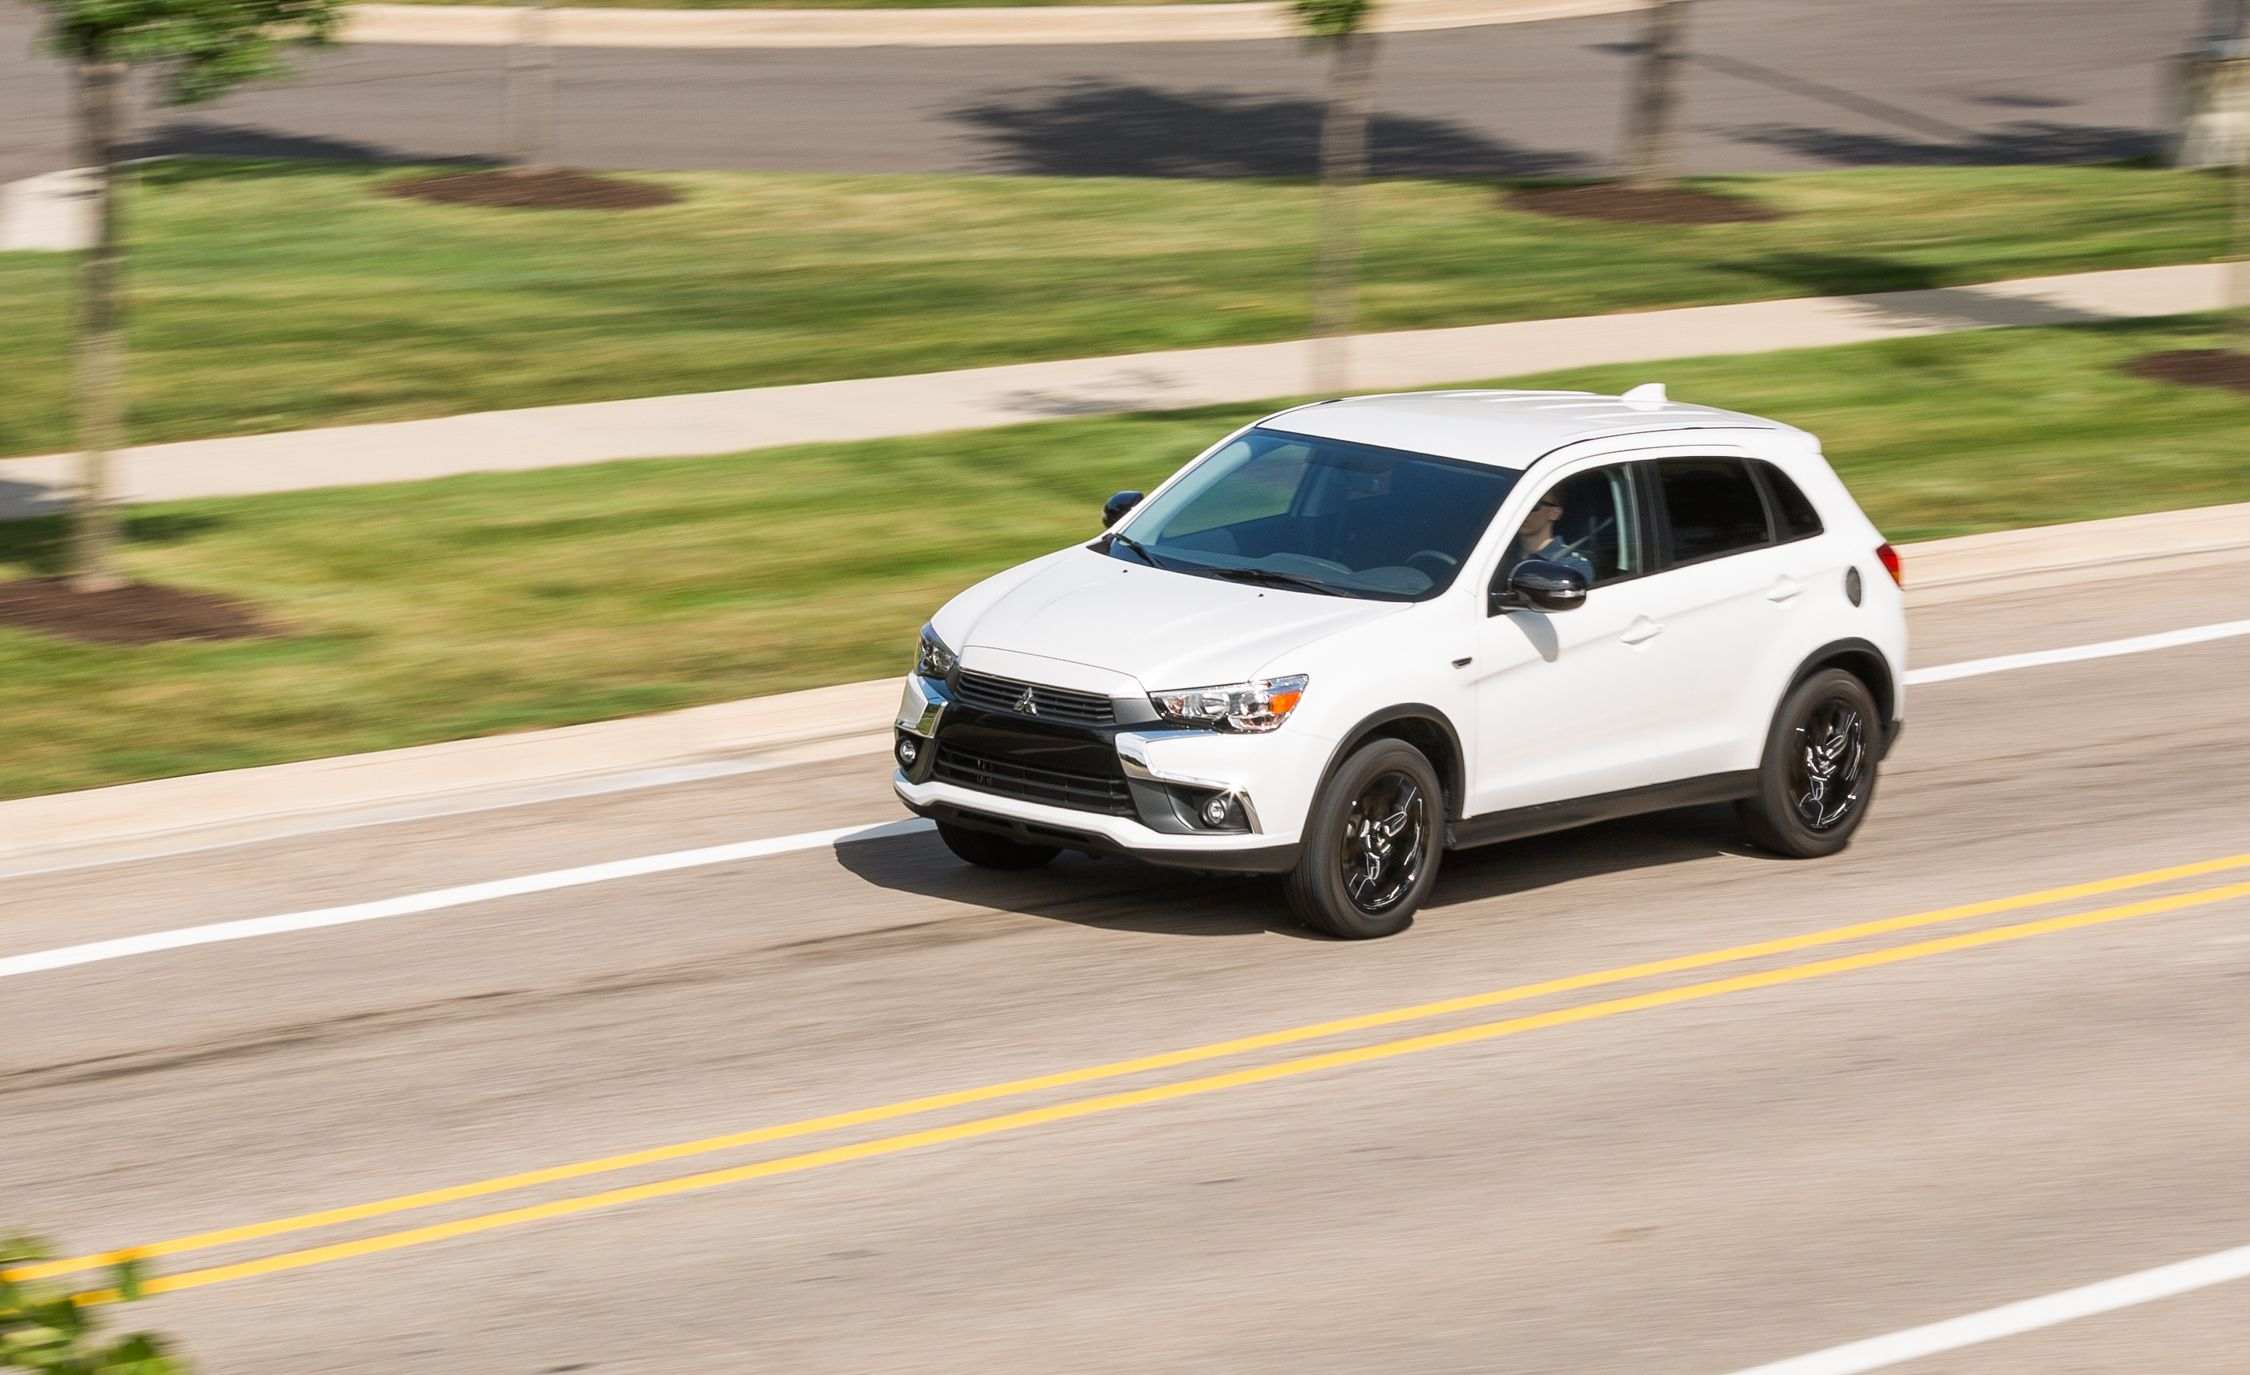 2017 Mitsubishi Outlander Sport 2.0L AWD Test | Review | Car and ...